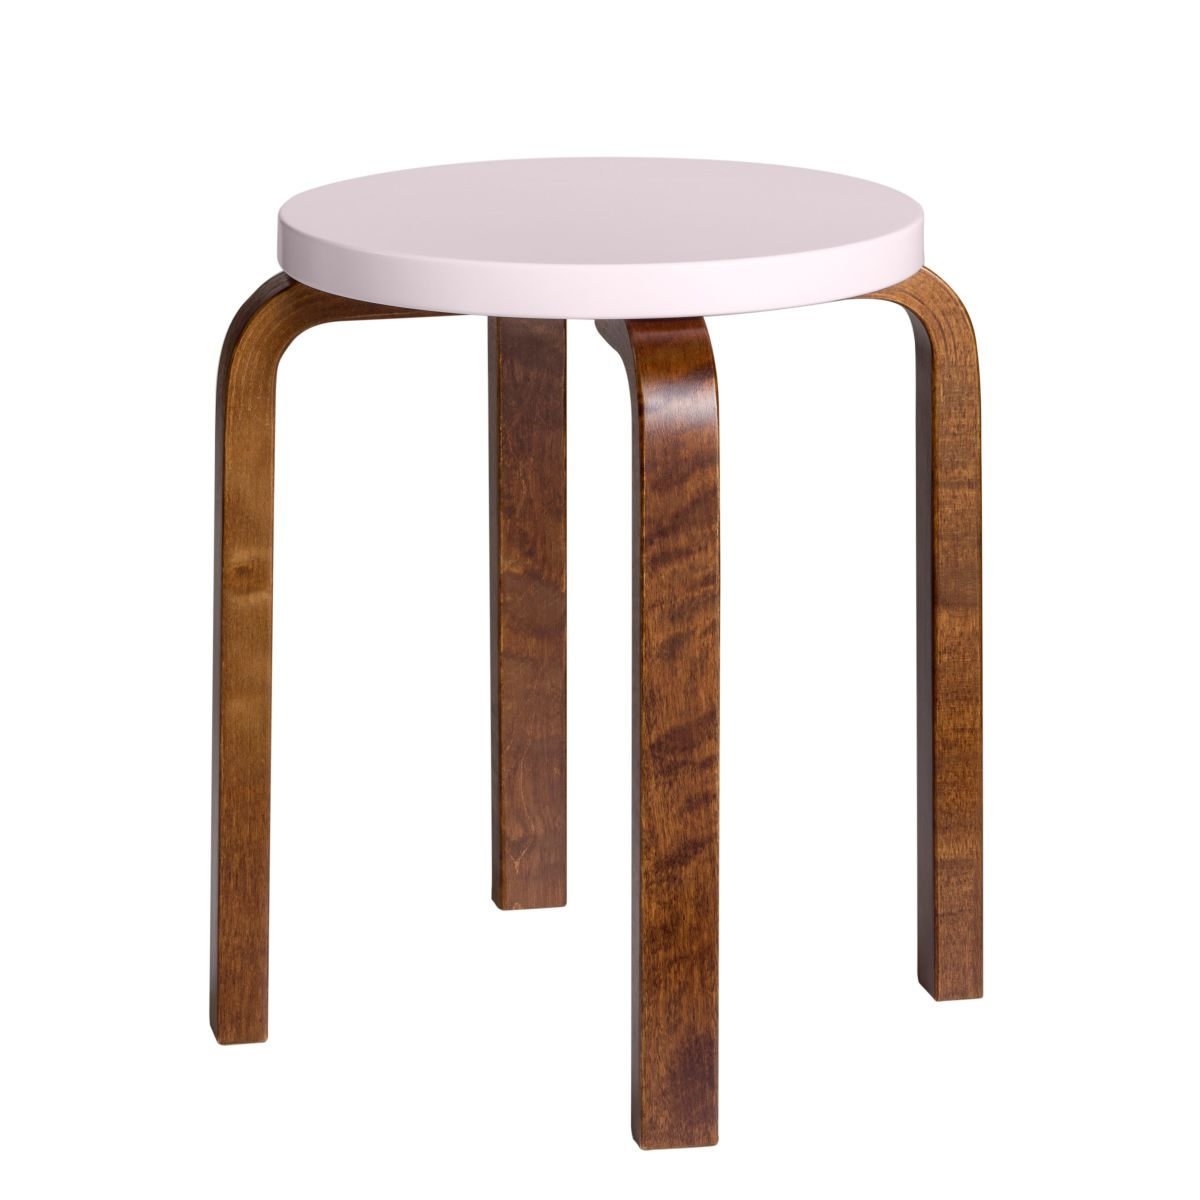 Stool E60 walnut stain pink top